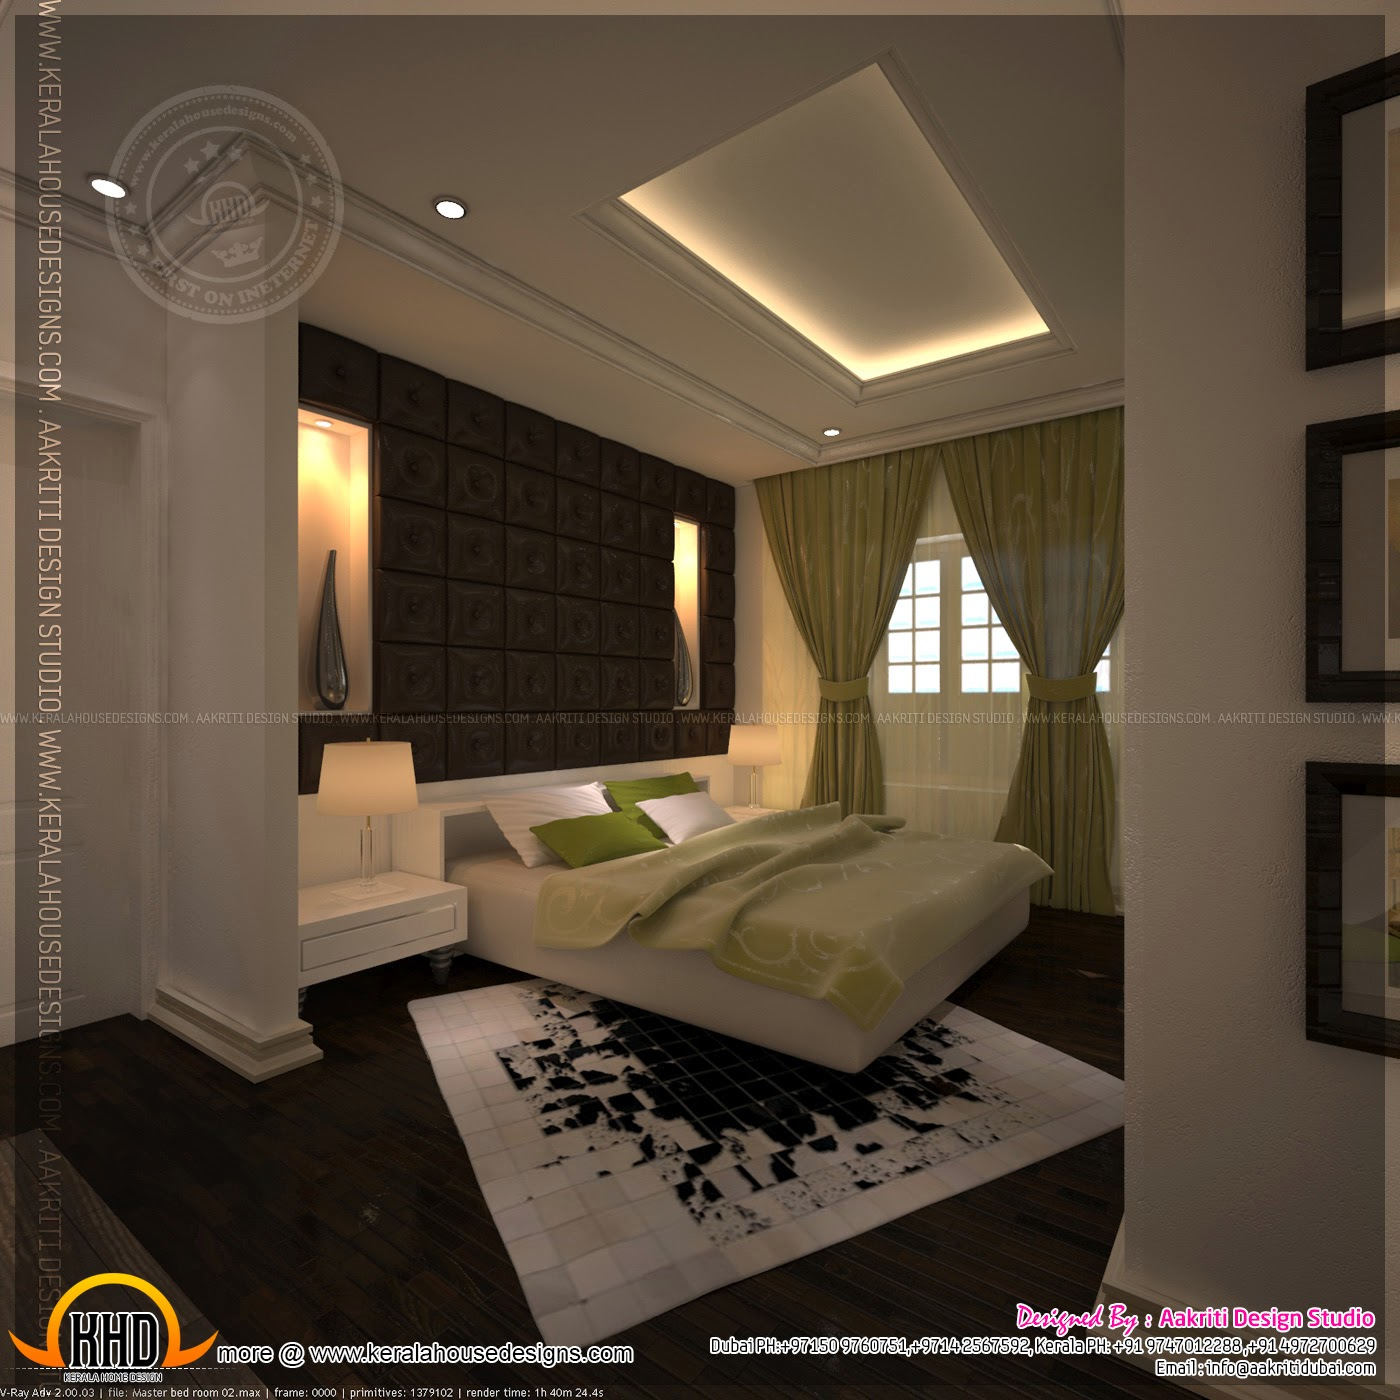 Master bedroom and bathroom interior design kerala home Interior design and interior decoration